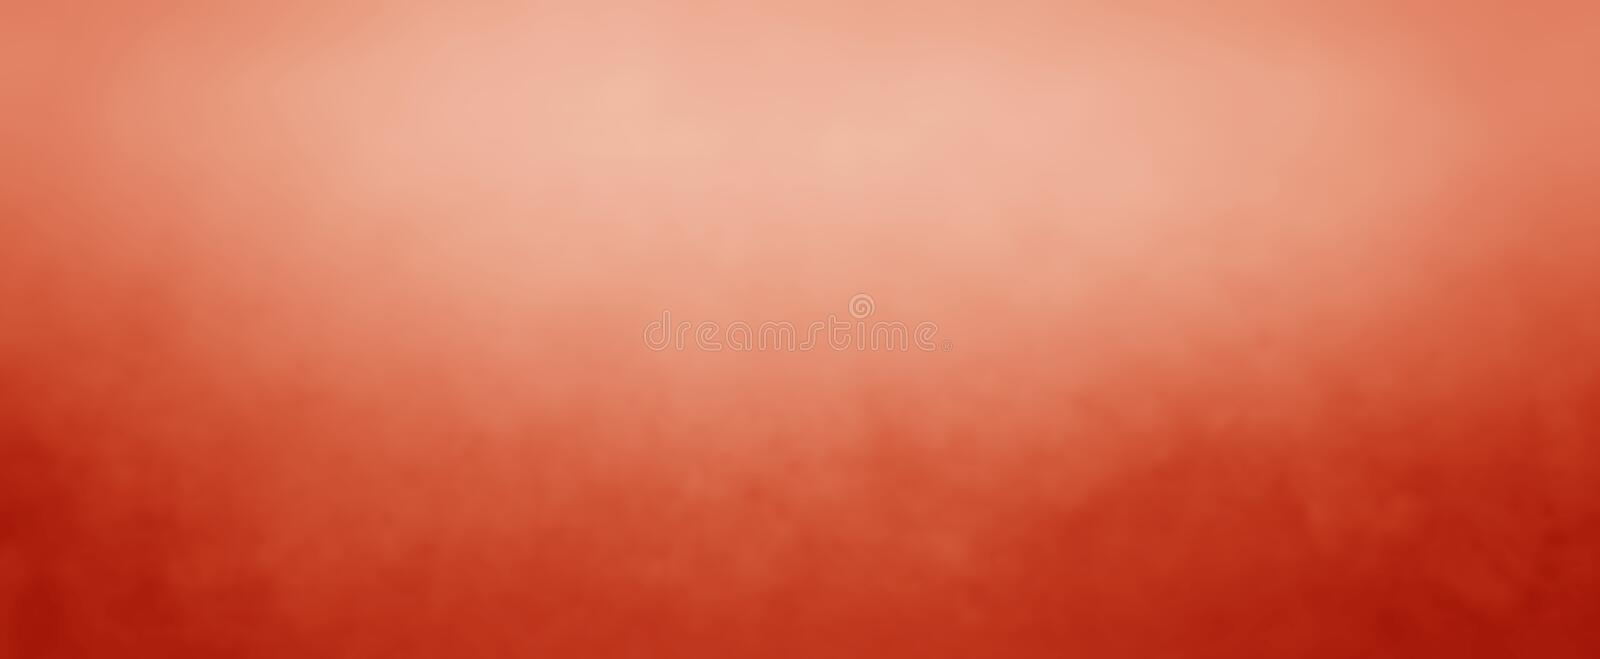 Red orange background with white and peach hazy top border and dark orange grunge texture bottom border. Elegant dark and light red orange background with white royalty free illustration